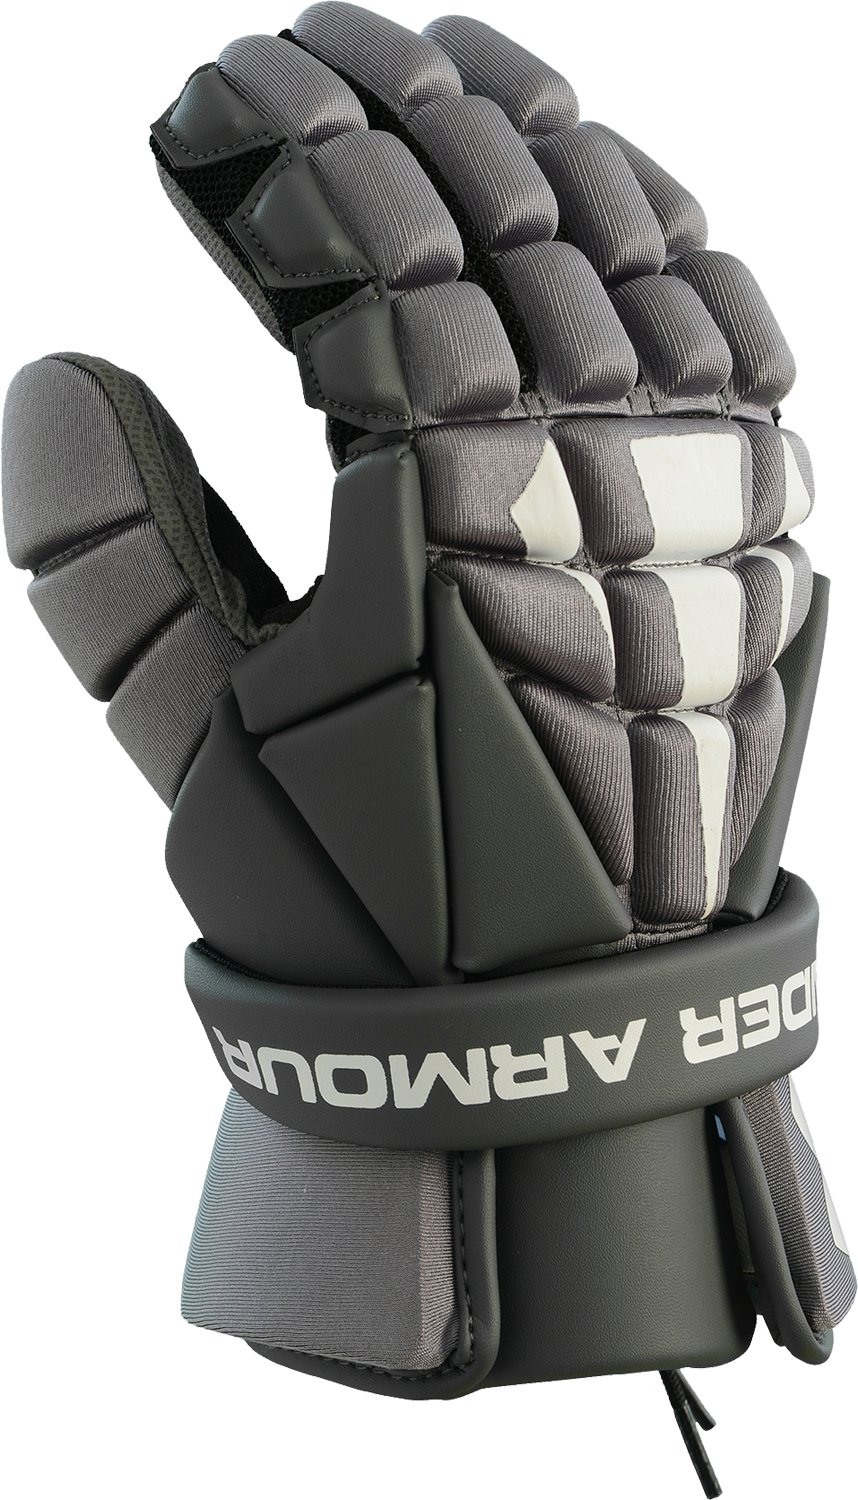 winter lacrosse gloves Men's UA Strategy Lacrosse Glove These gloves are sweet dude get the gloves or dont play lacrosse